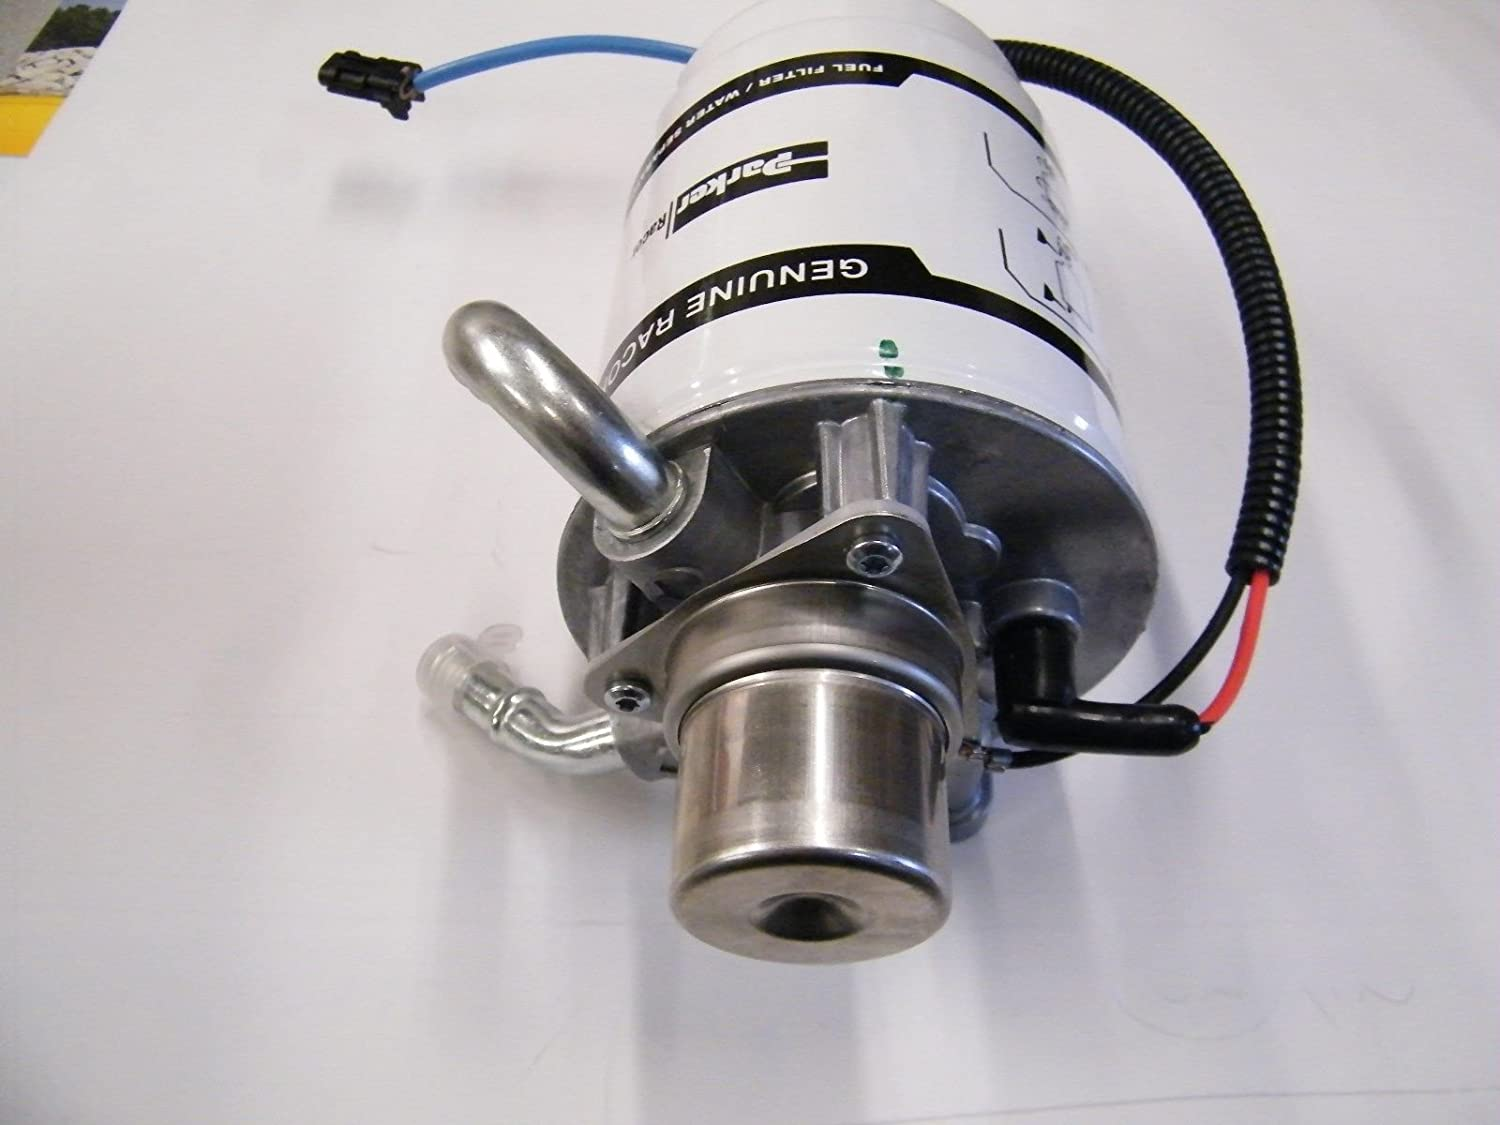 2004 1 2 Lly Lbz Silverado Duramax Fuel Filter Housing Gm Filters Assembly Primer Home Improvement